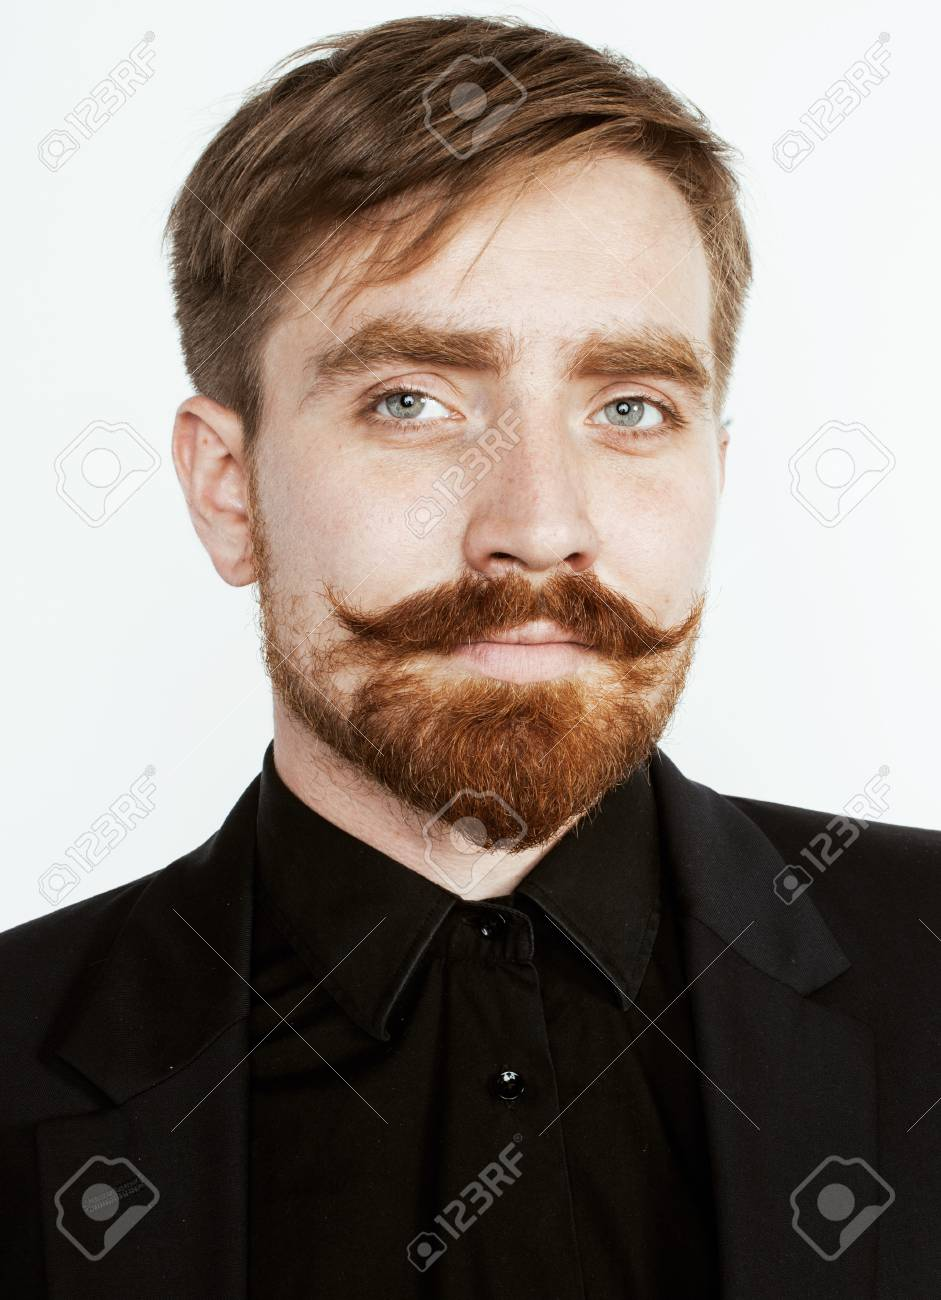 Young Red Hair Man With Beard And Mustache In Black Suit On White Stock Photo Picture And Royalty Free Image Image 62319797